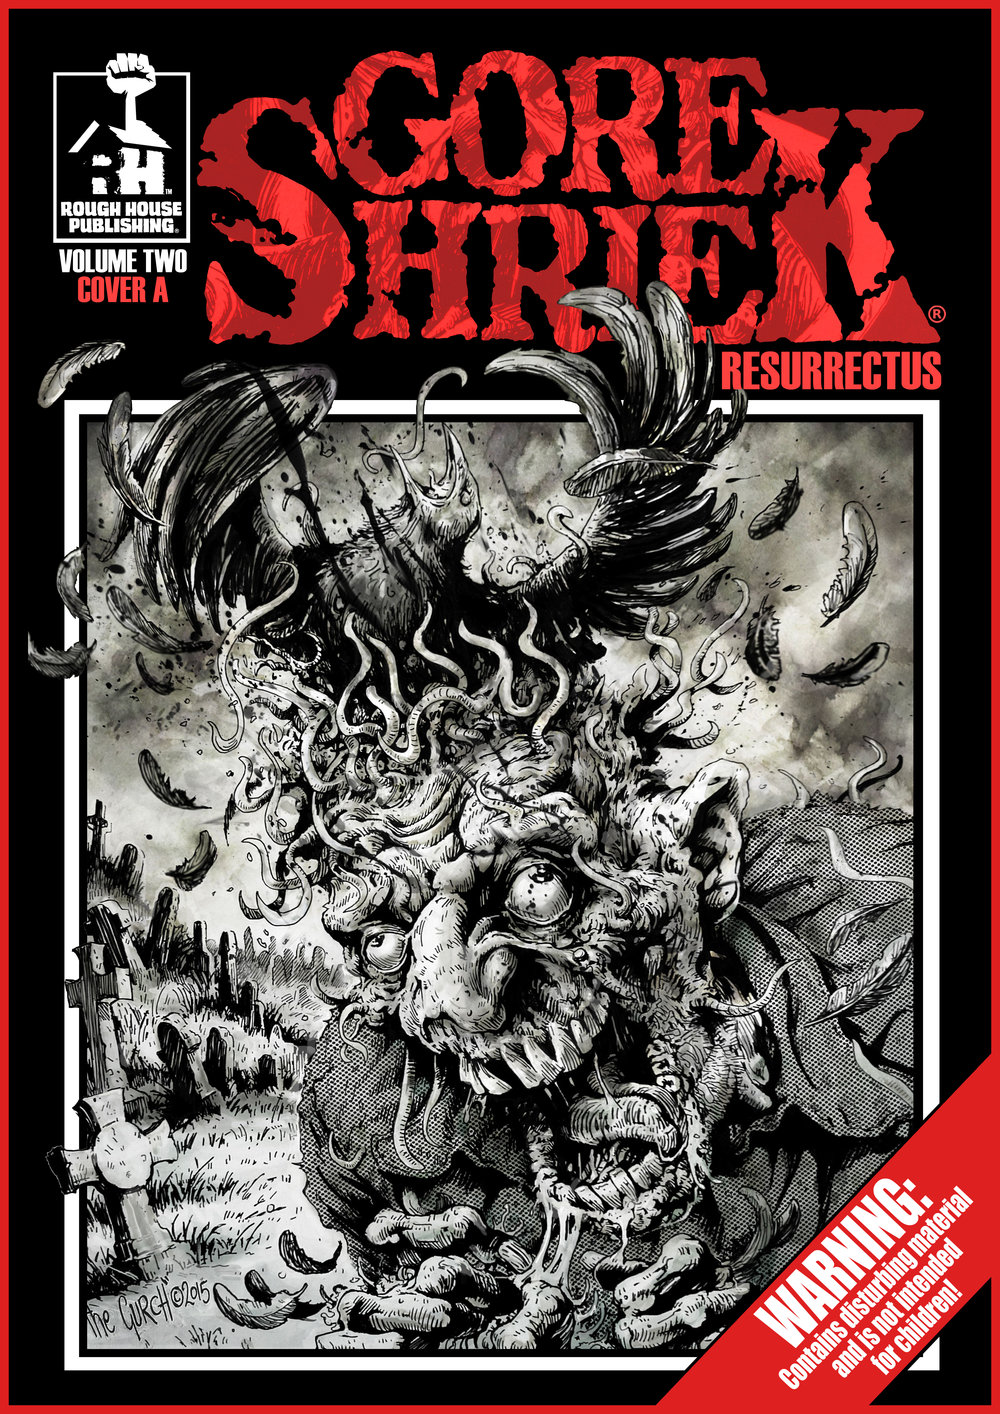 PREVIEW FRONT COVER - GORE SHRIEK RESURRECTUS VOLUME TWO (COVER A - THE GURCH). COMING SPRING 2019.